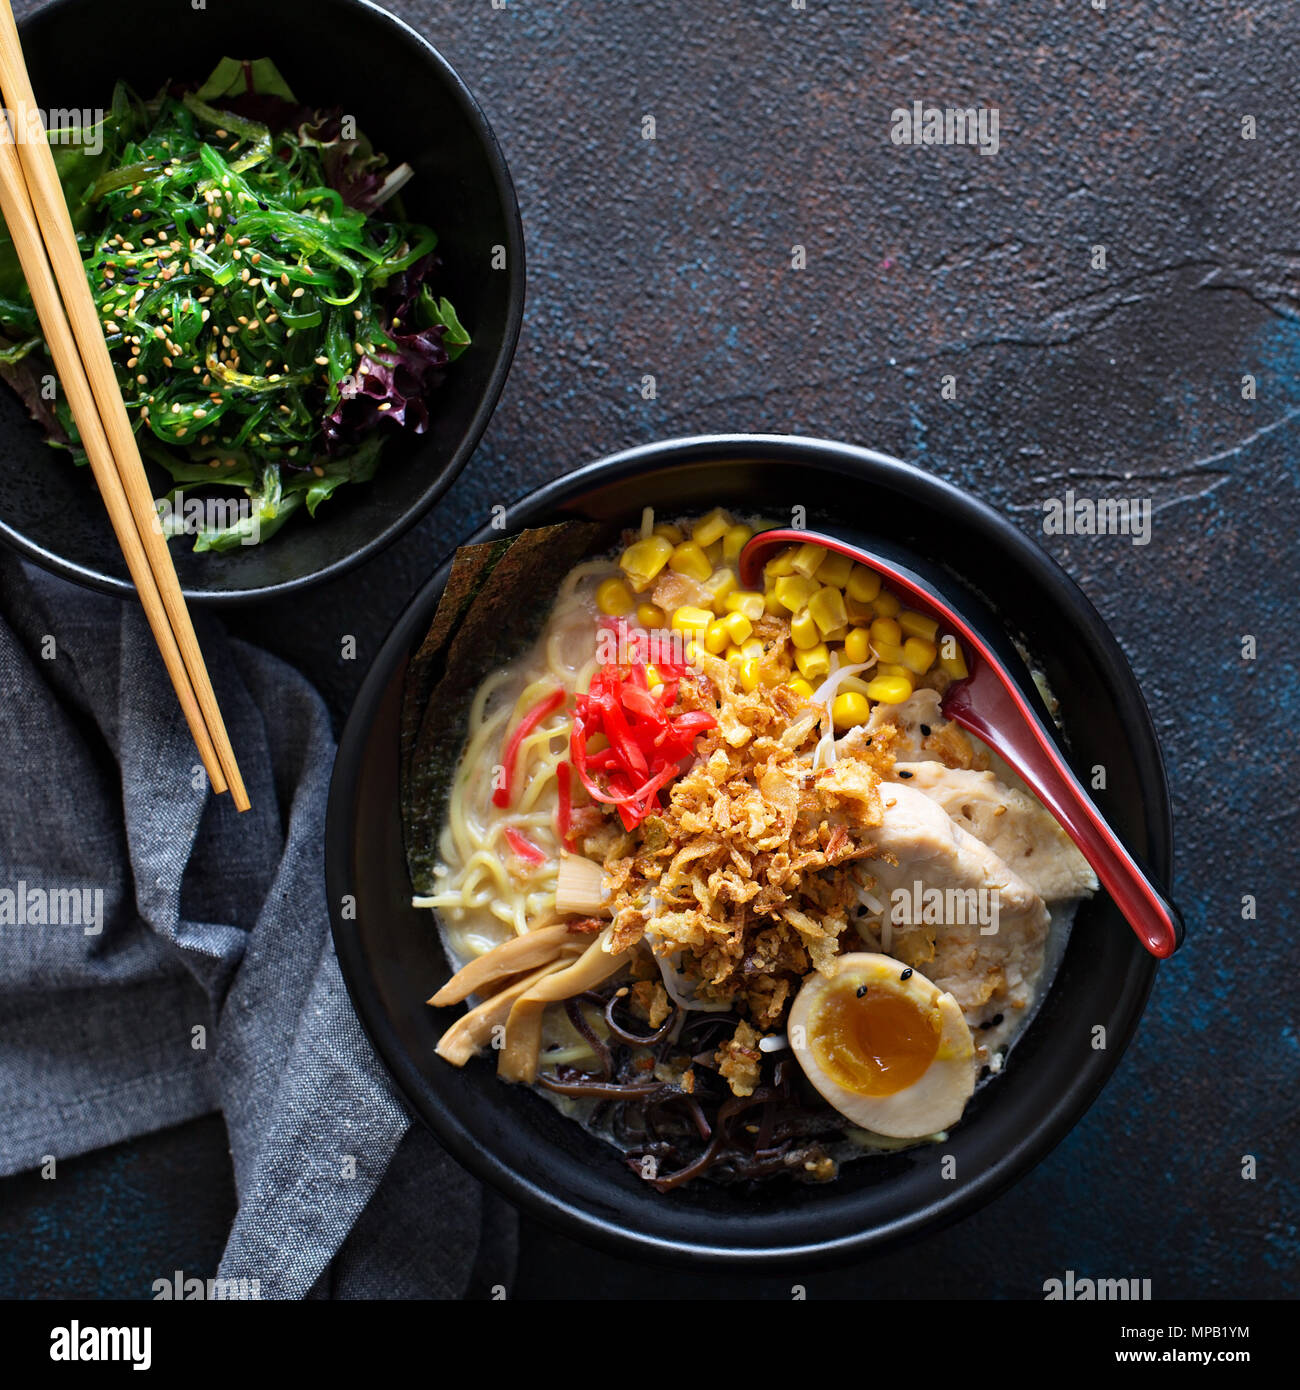 Spicy ramen bowls with noodles, pork and chicken - Stock Image